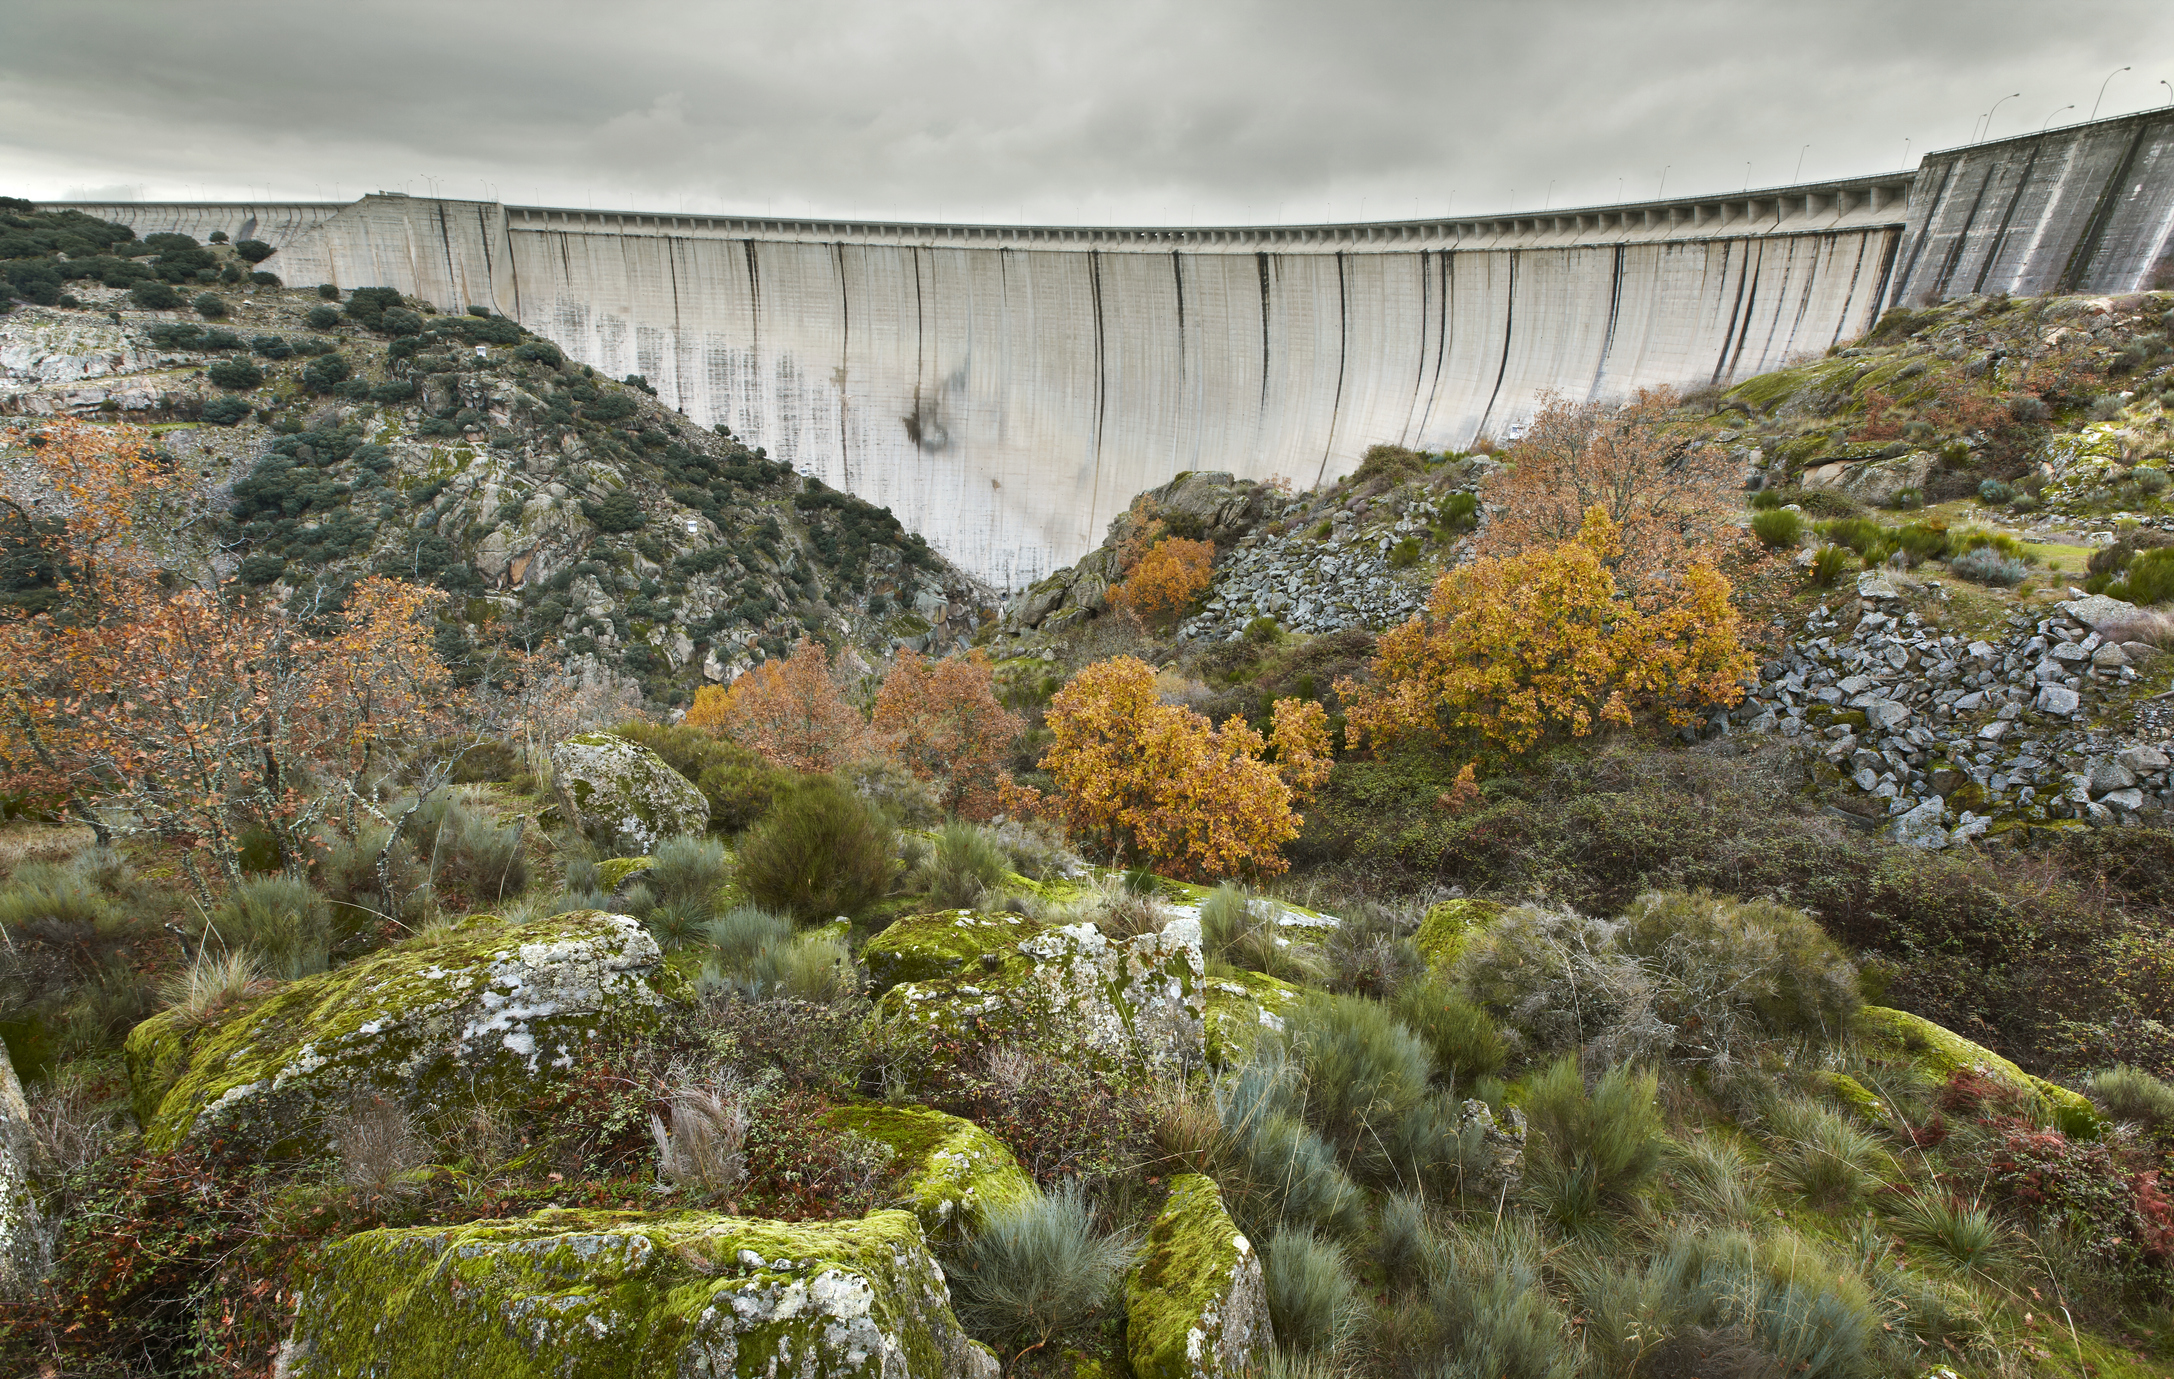 Almendra dam in Salamanca, Spain dispersing water